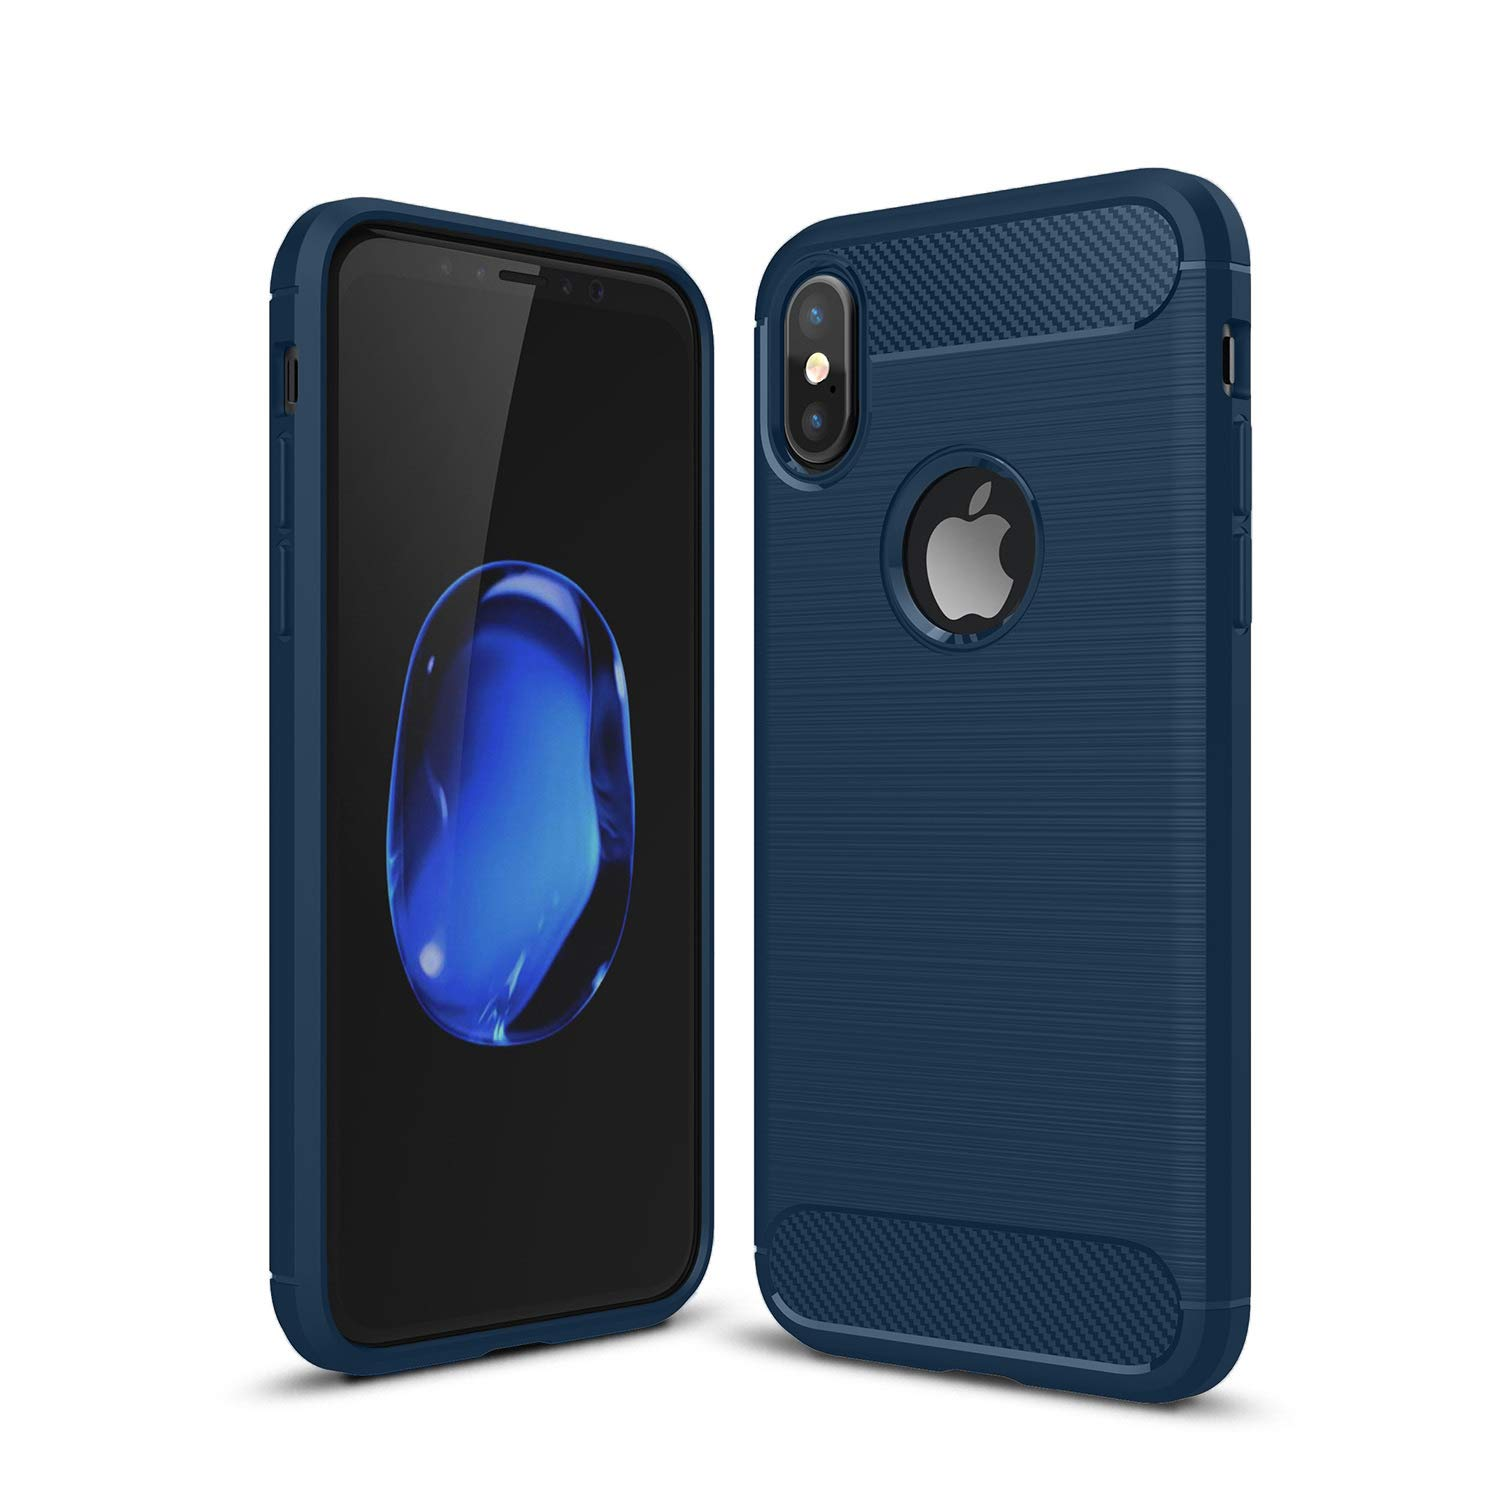 Kit Me Out World Carbon Series Case Designed for iPhone Xs Max Case, Full Matte Slim Fit Flexible TPU Minimal Durable Protection Case Cover Brushed Carbon Fiber Effect (Navy Blue)